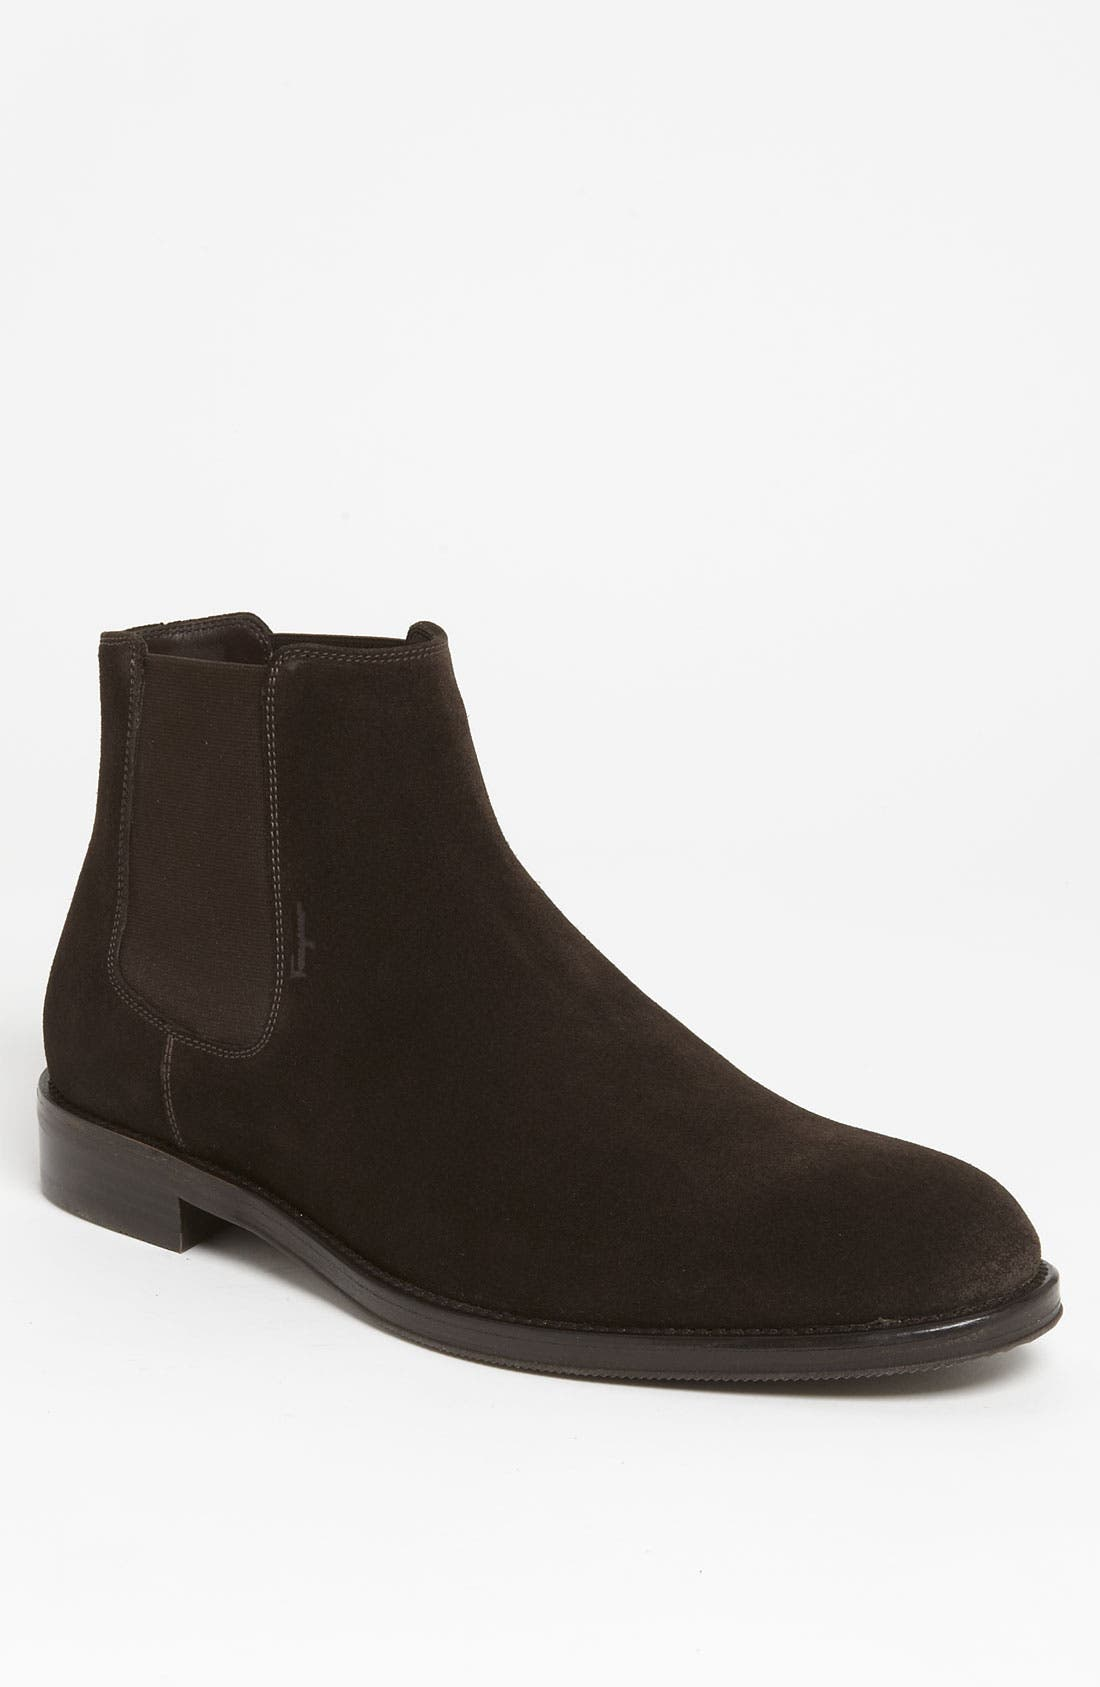 Alternate Image 1 Selected - Salvatore Ferragamo 'Cedric Bucela' Chelsea Boot